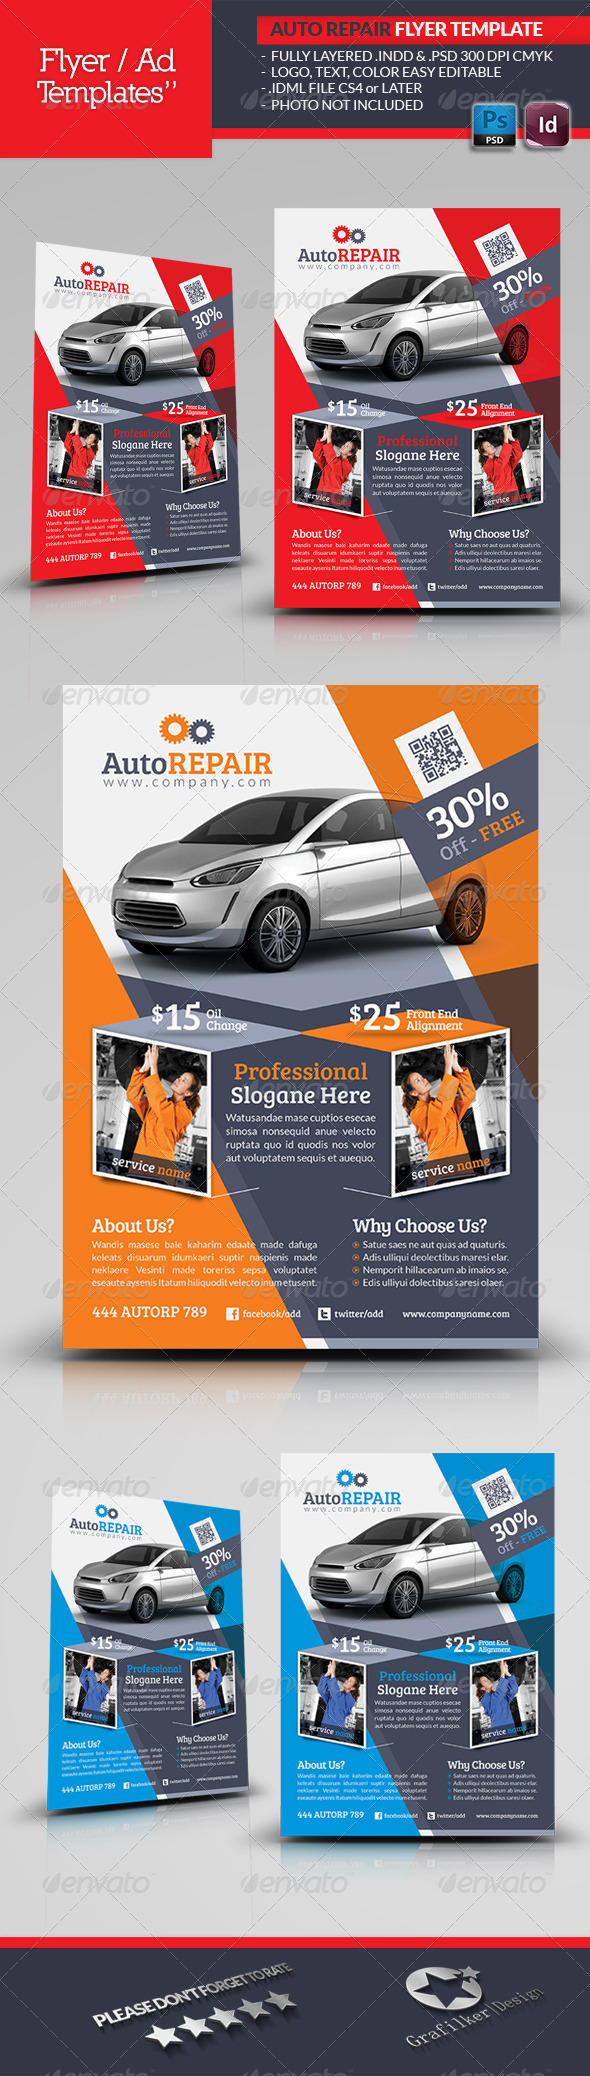 Automobile Repair Flyer Template - Corporate Flyers